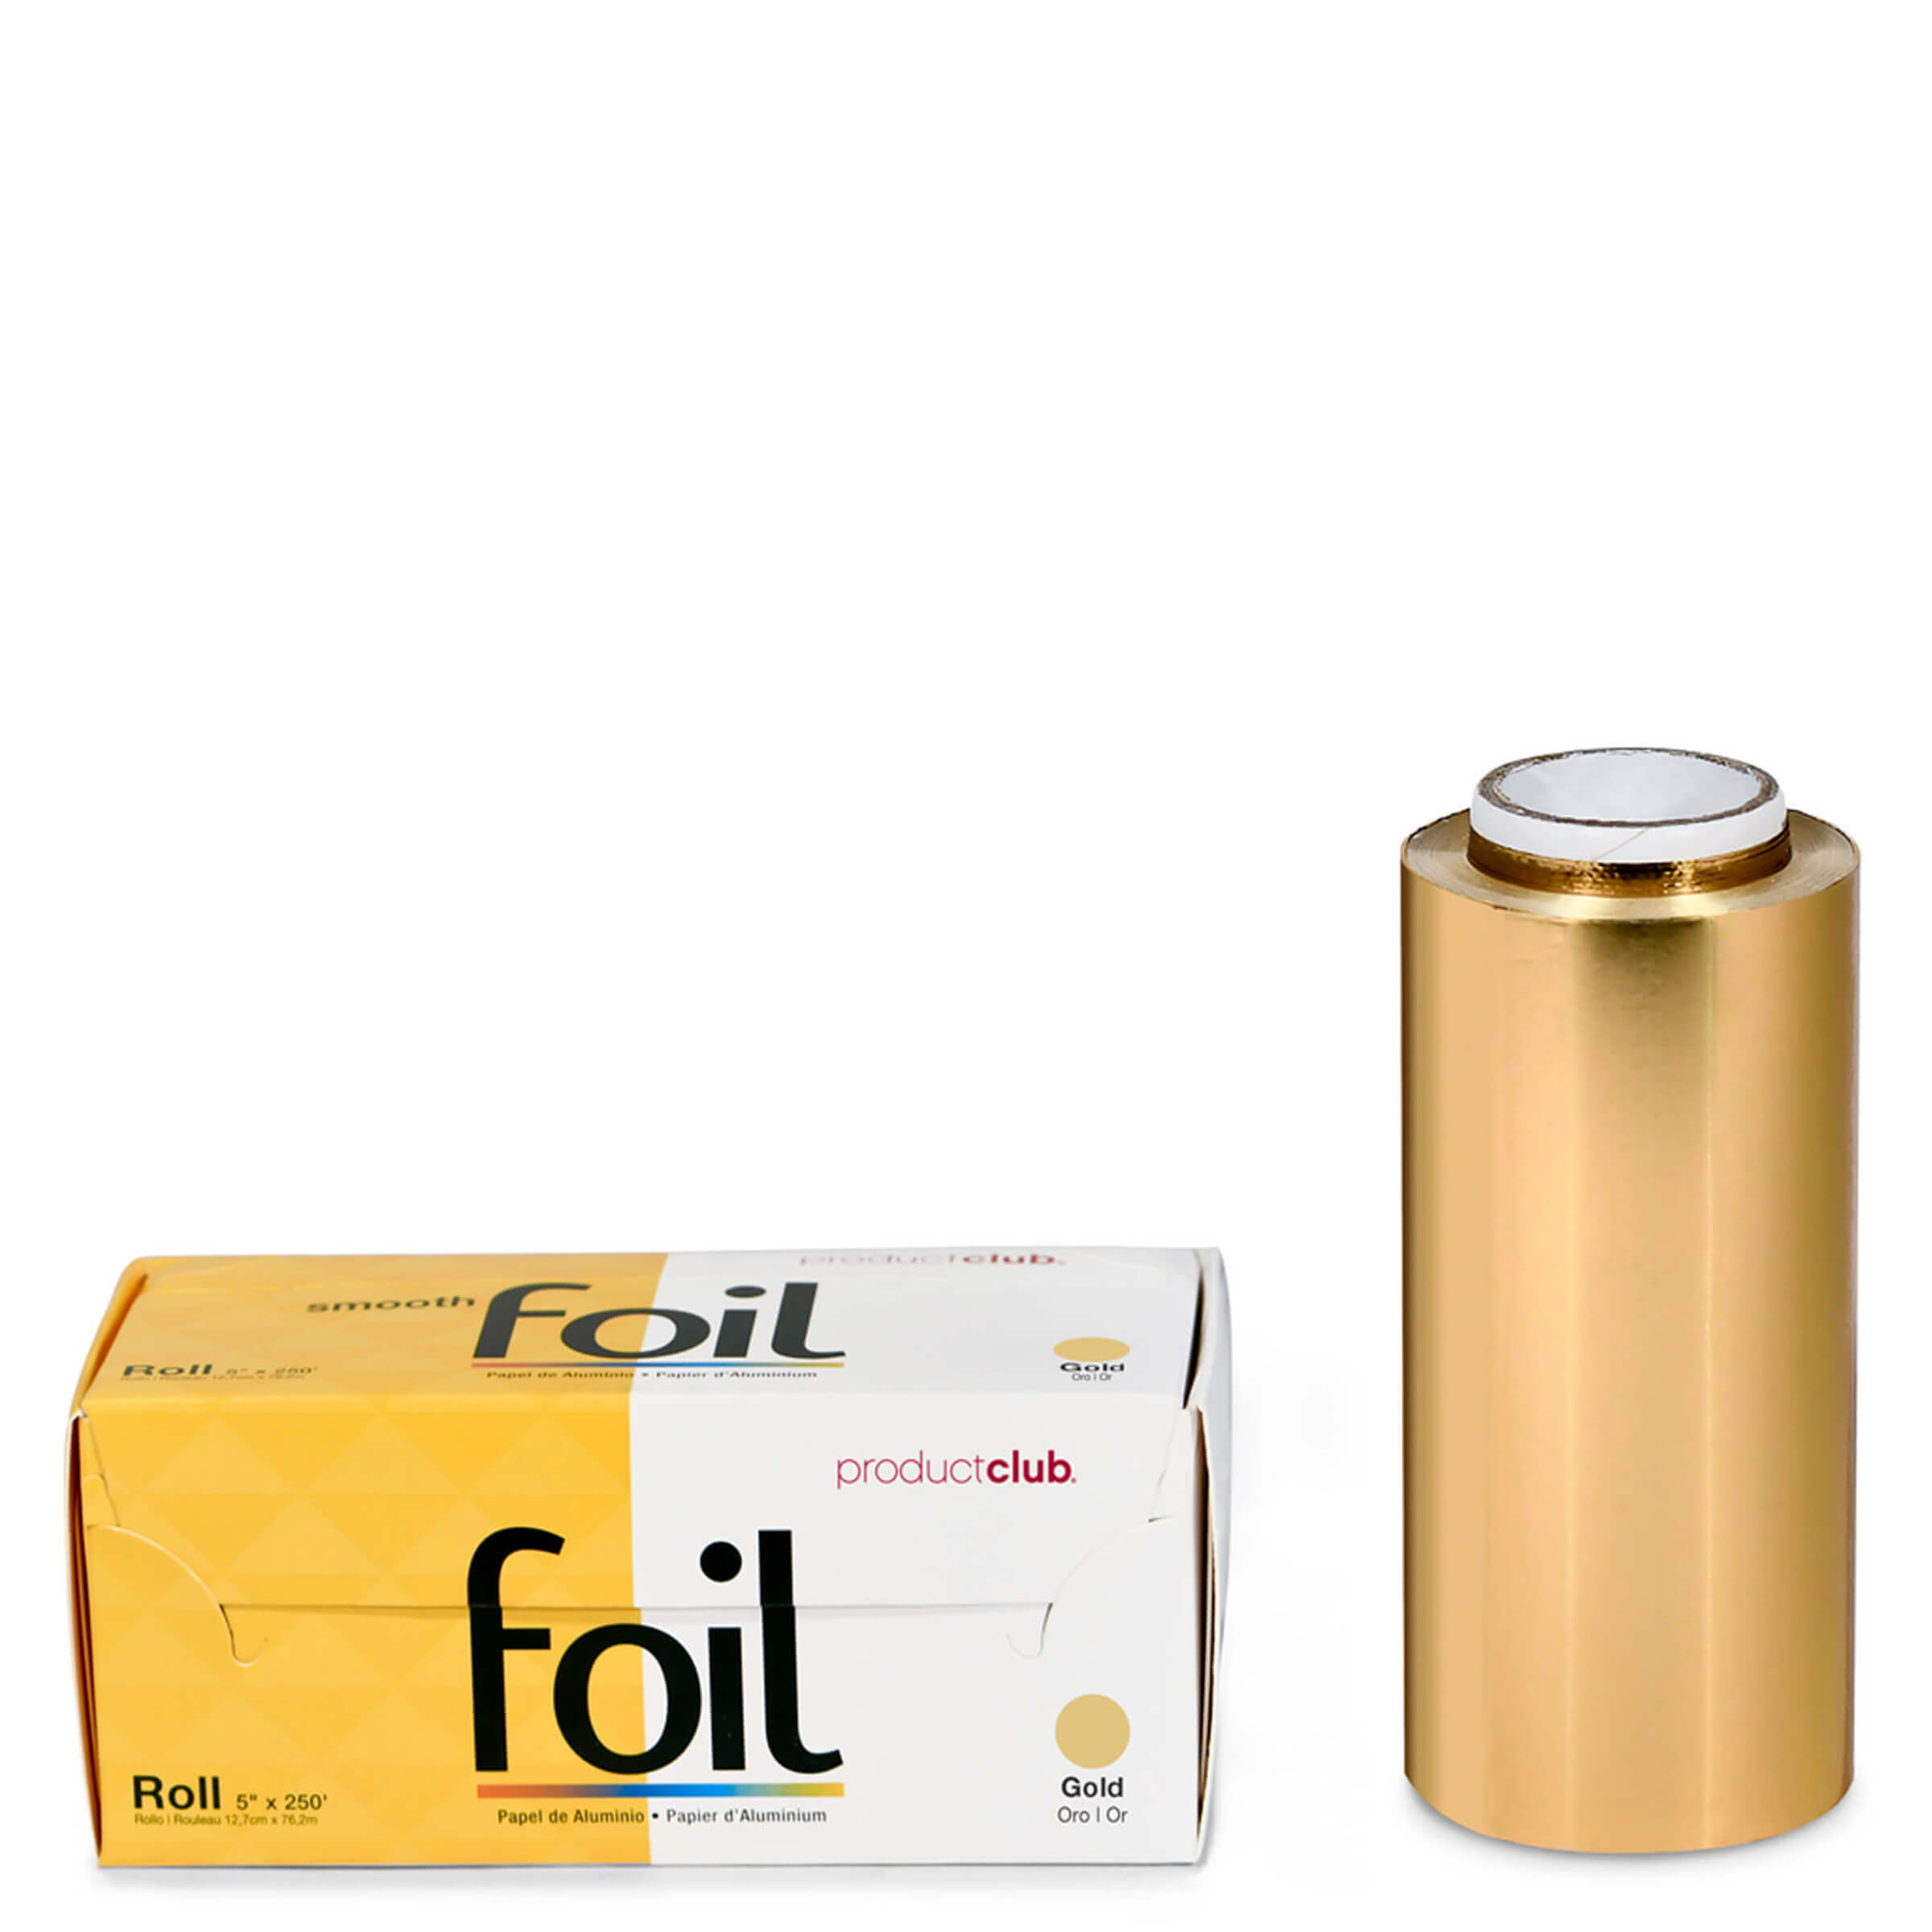 RF-10-60G Gold Hair Dye Roll Foil